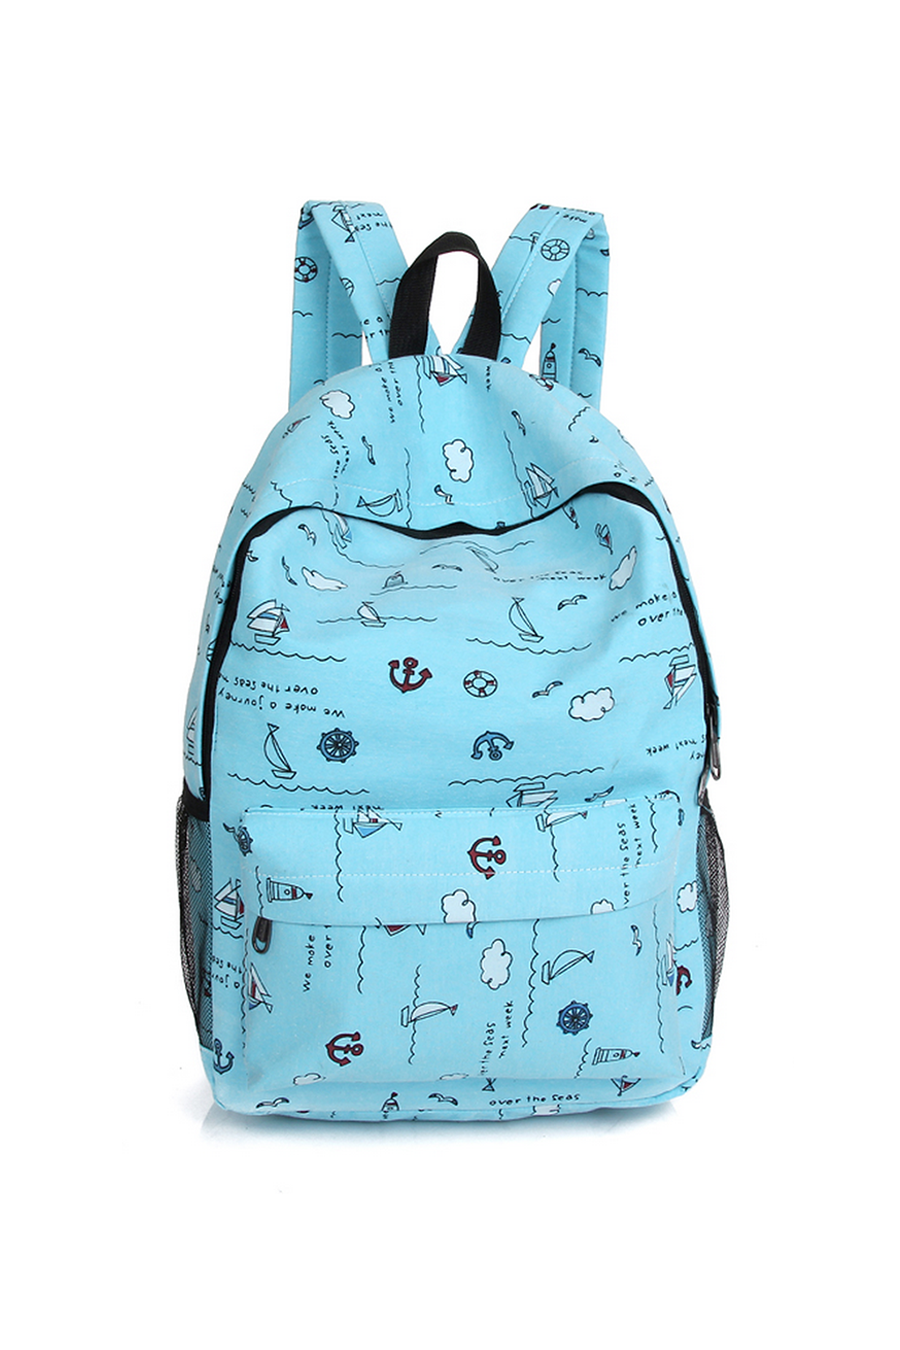 Pastel Blue Printed Backpack